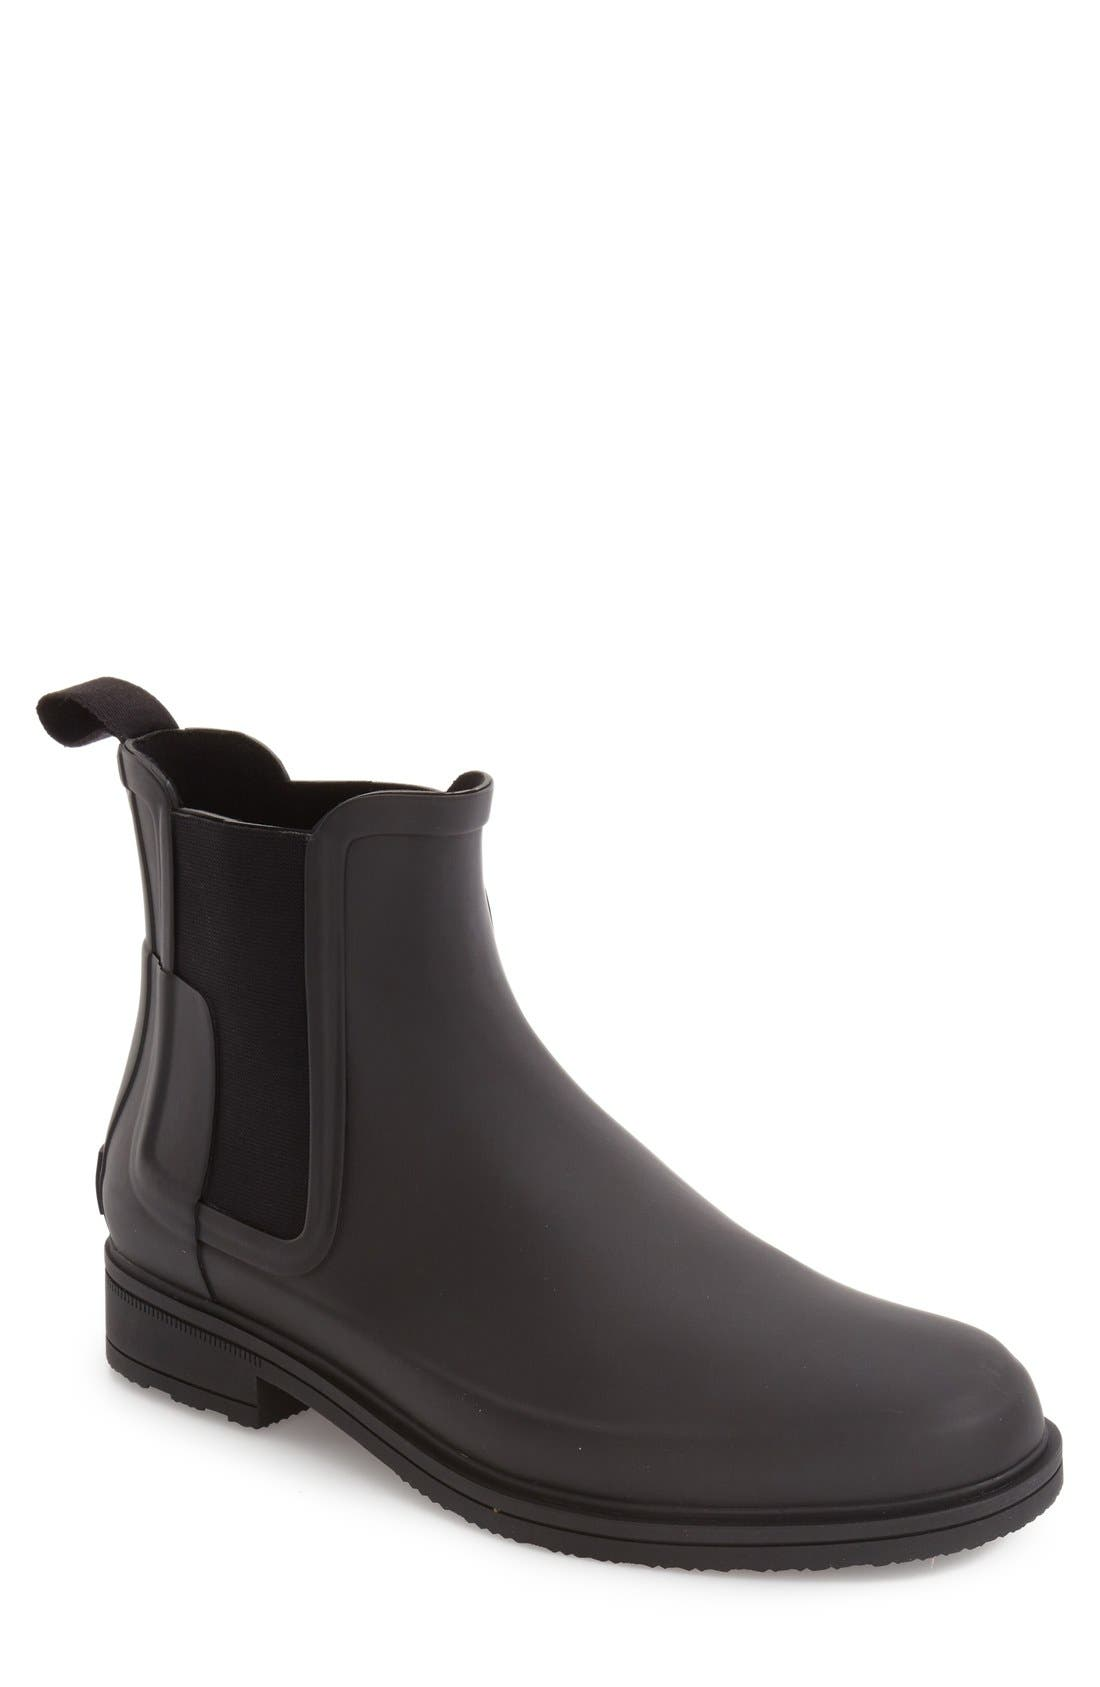 Alternate Image 1 Selected - Hunter Original Refined Waterproof Chelsea Boot (Men)